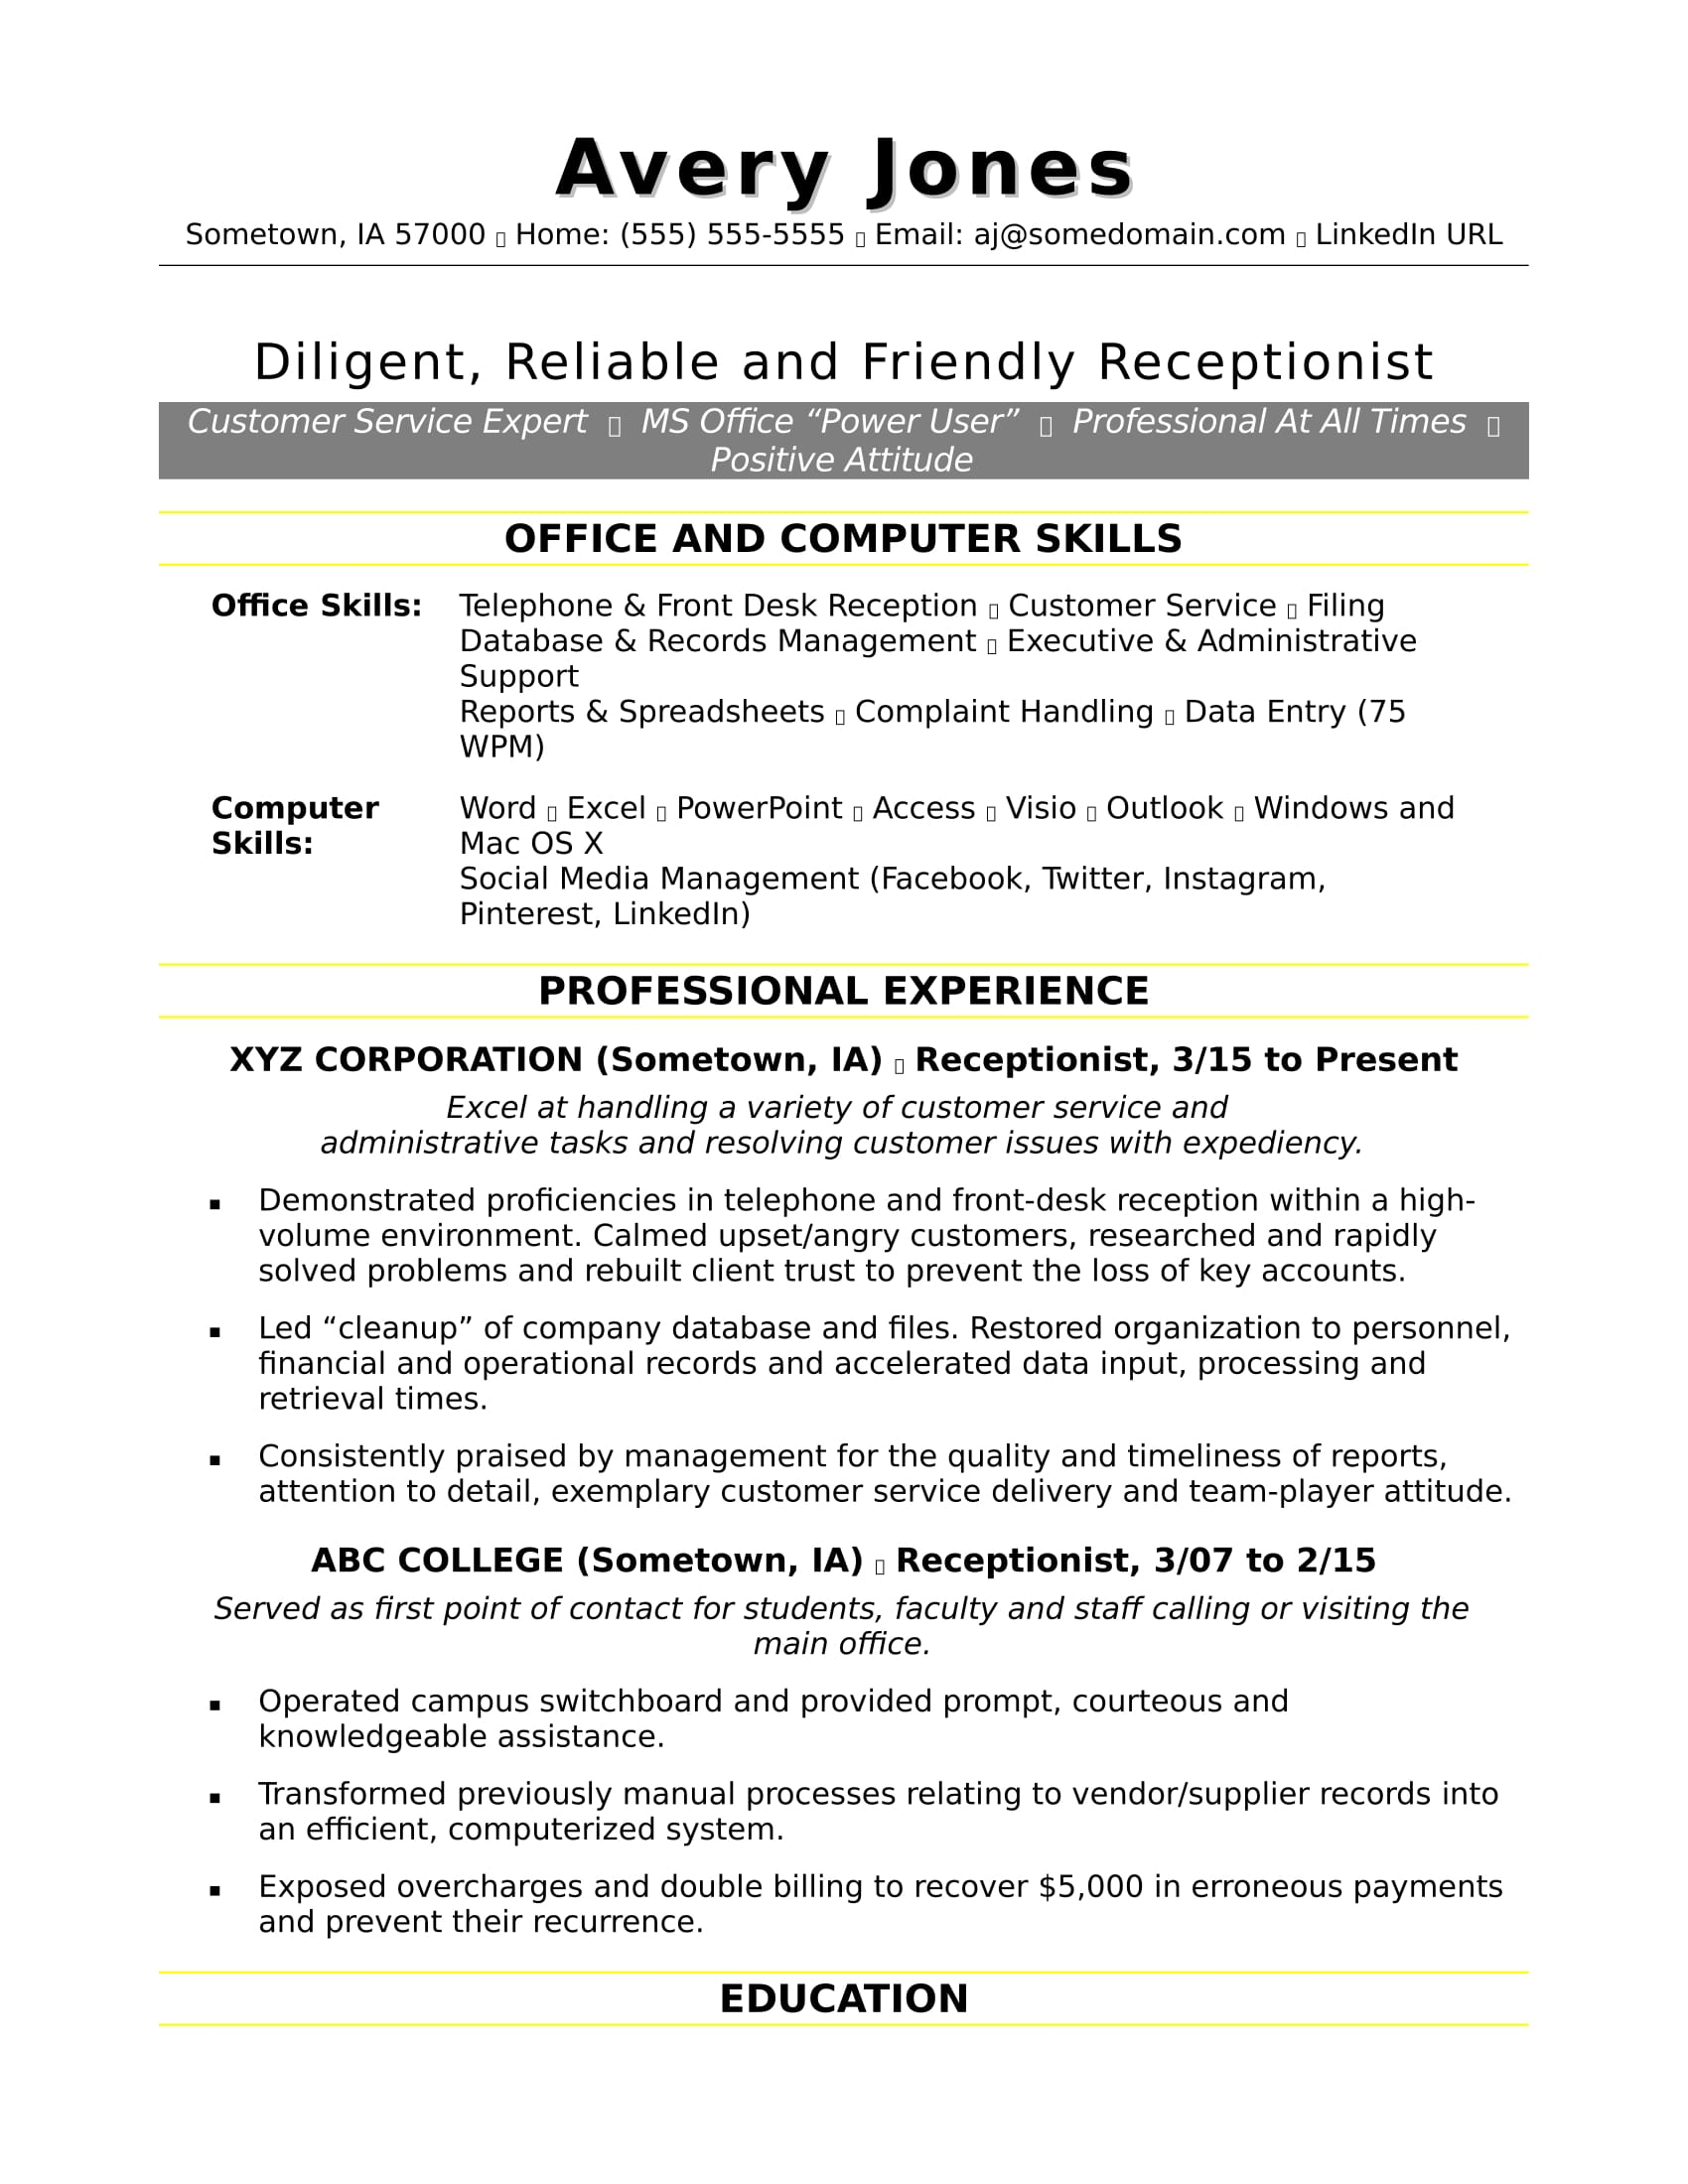 Sample Resume For A Receptionist  Best Resume Advice